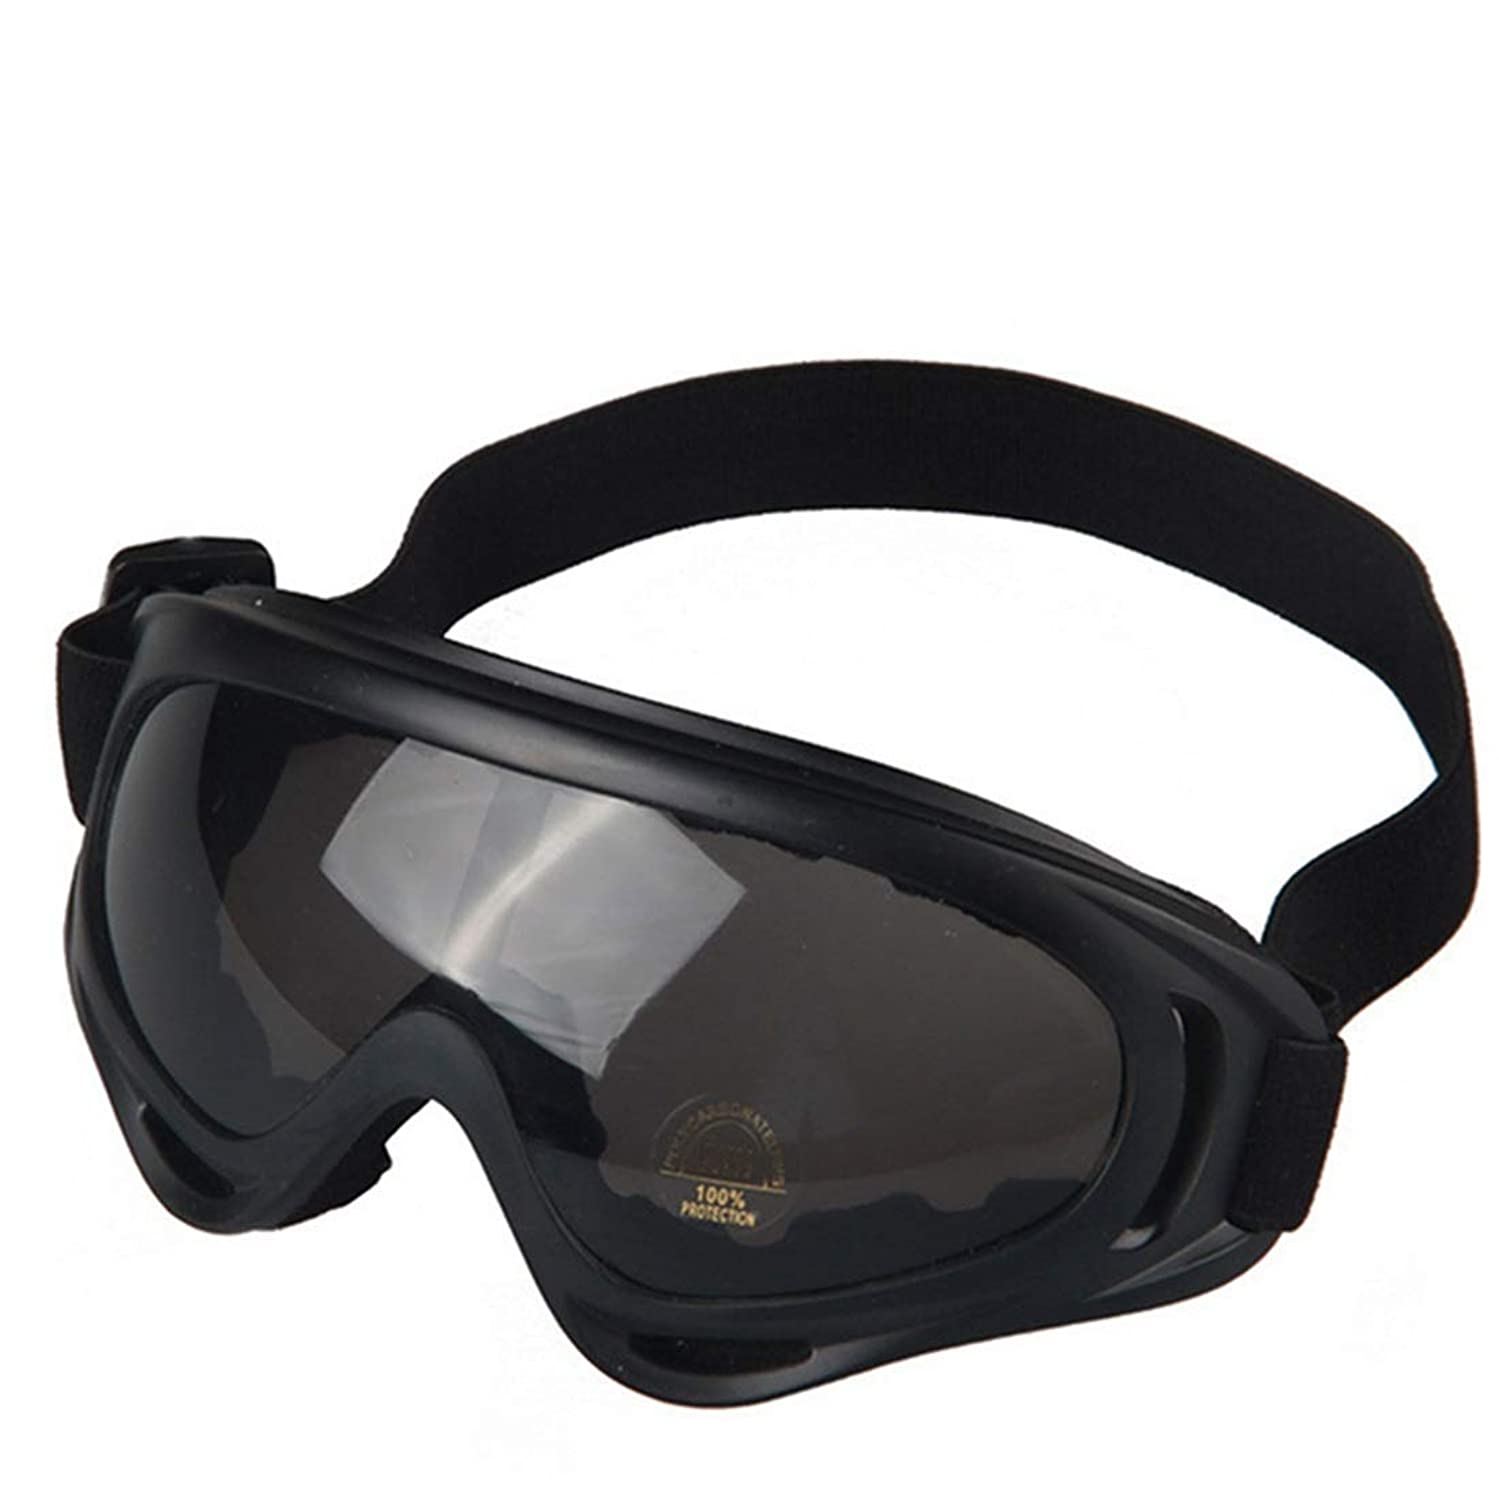 Exquisite Goggles Outdoor Sports Glasses Motorcycles Windbreak Goggles Riding Cross-Country Goggles Ski Goggles (Color : Gray Lens)